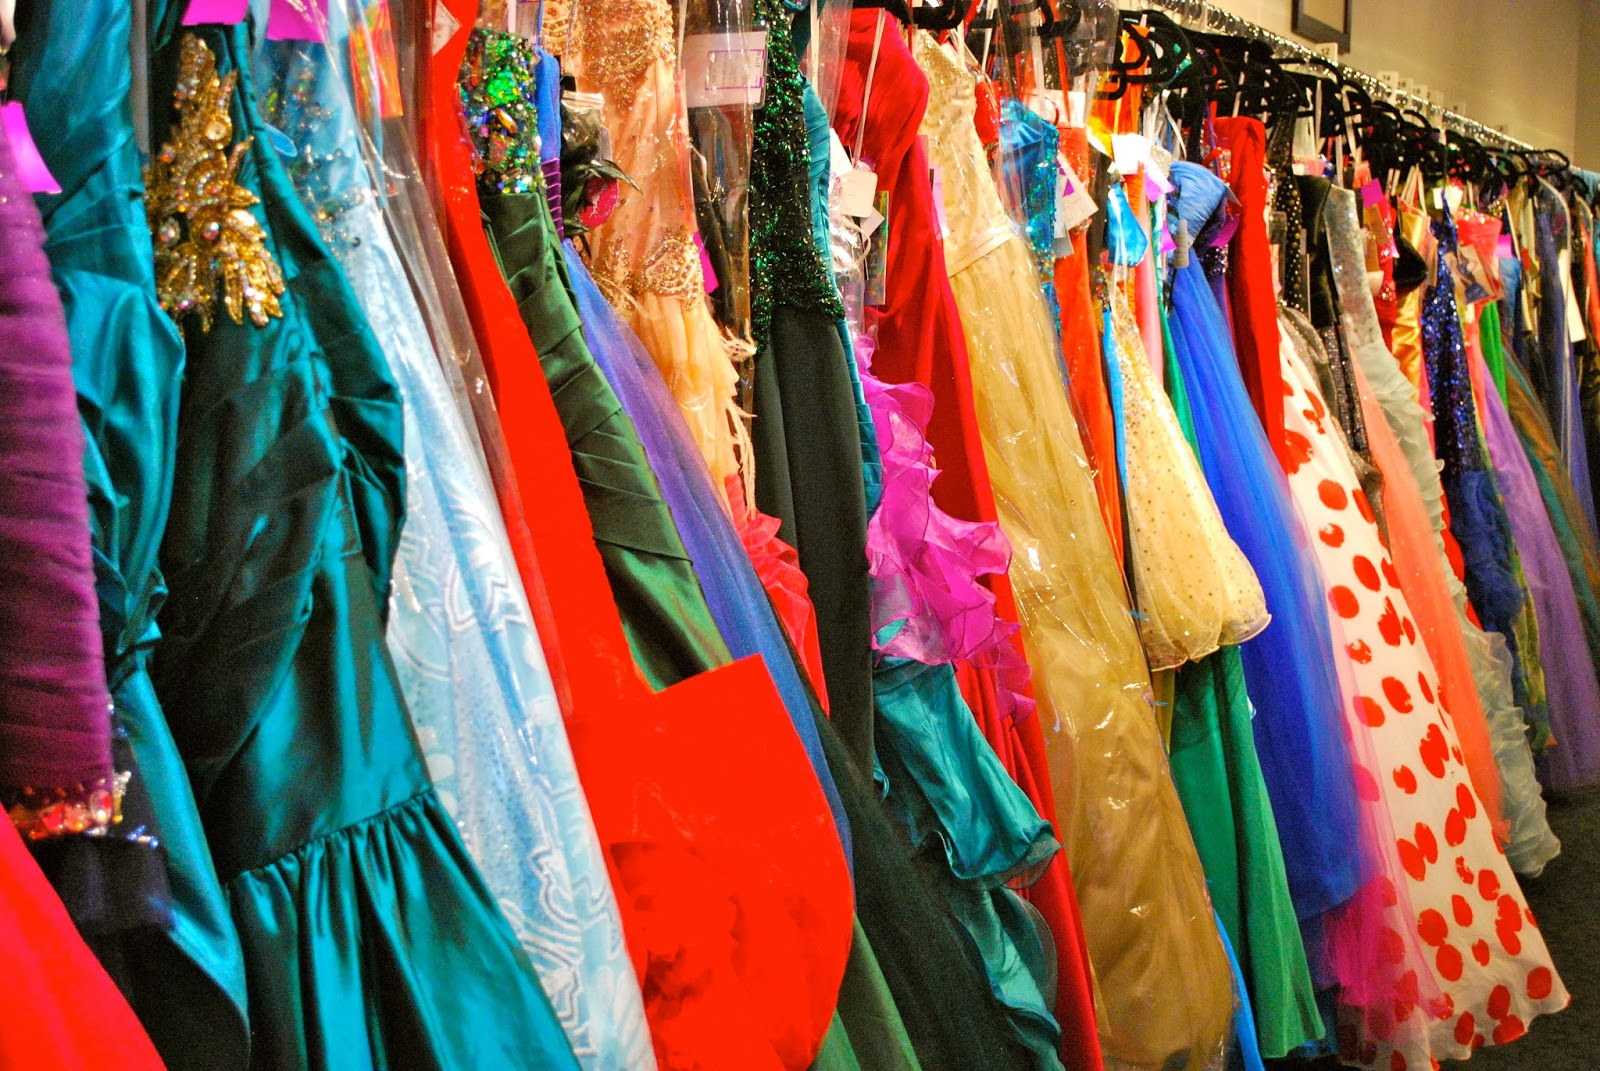 Images of Prom Dress Shops - The Fashions Of Paradise